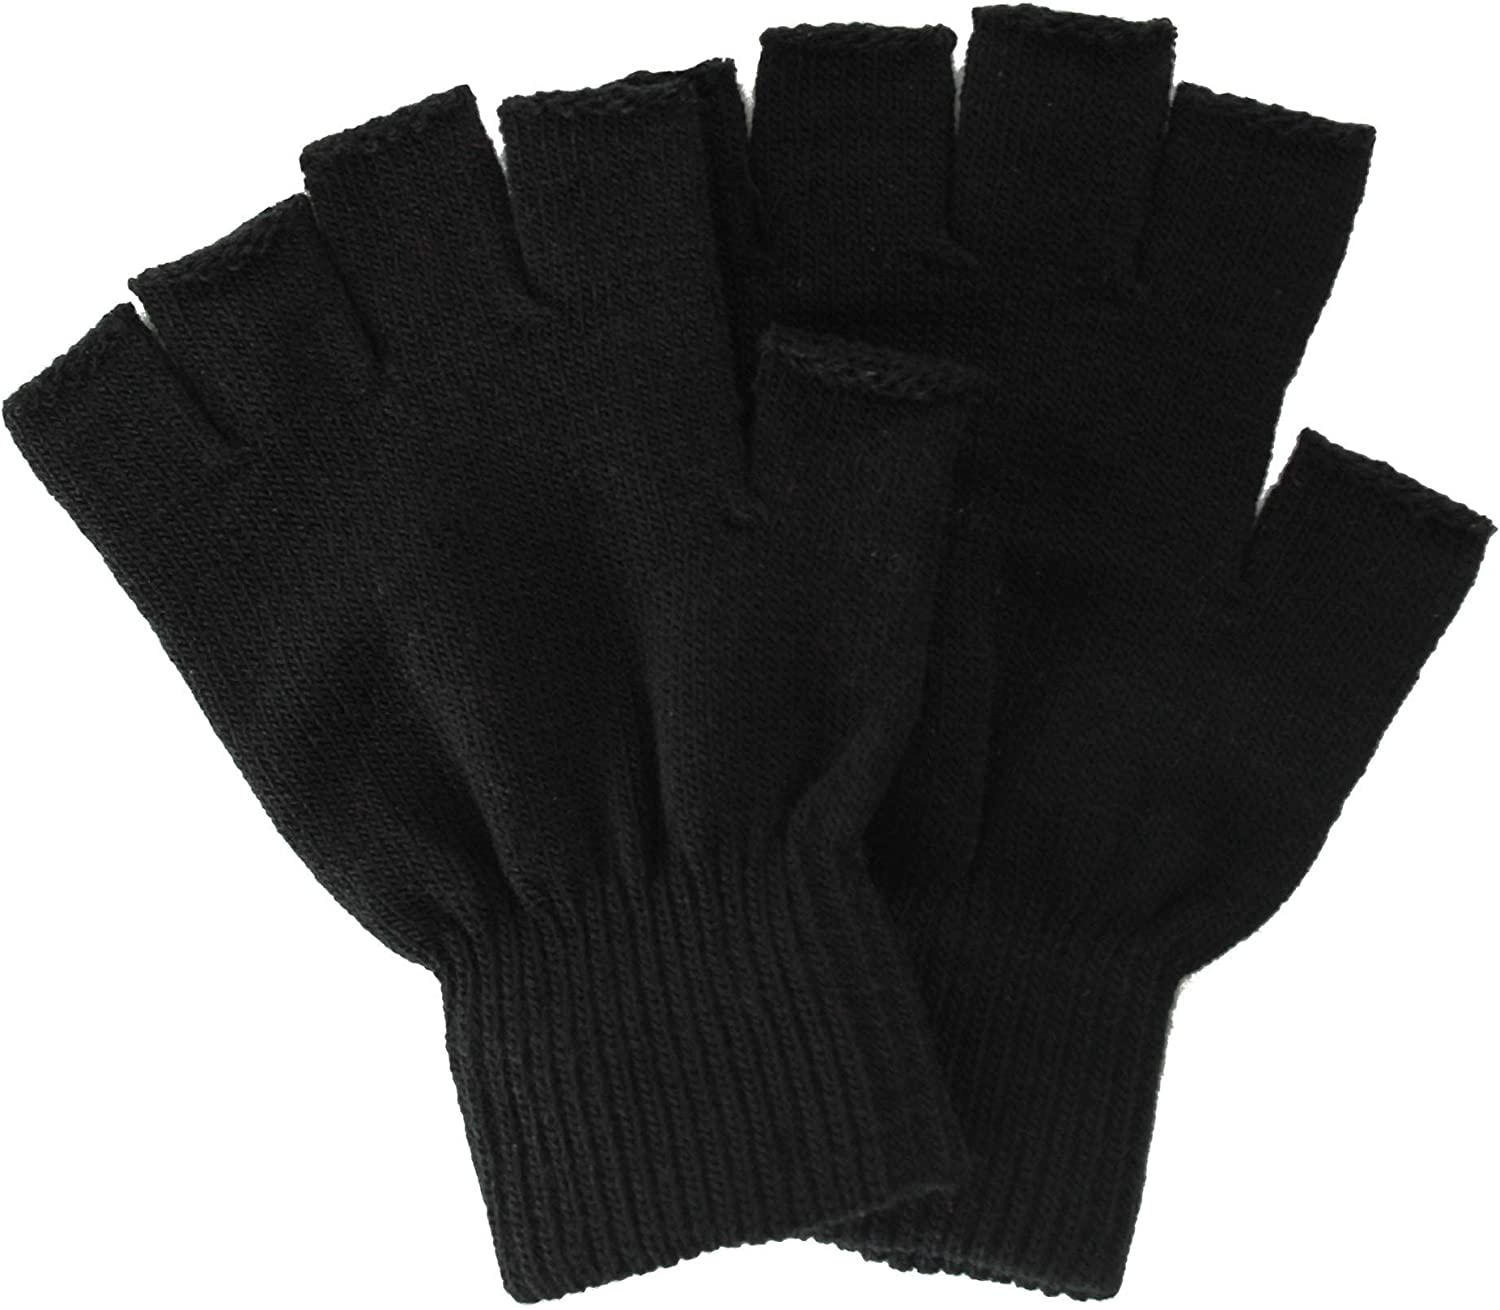 Simplicity Men/Women Winter Classic Solid Colored Knit Gloves